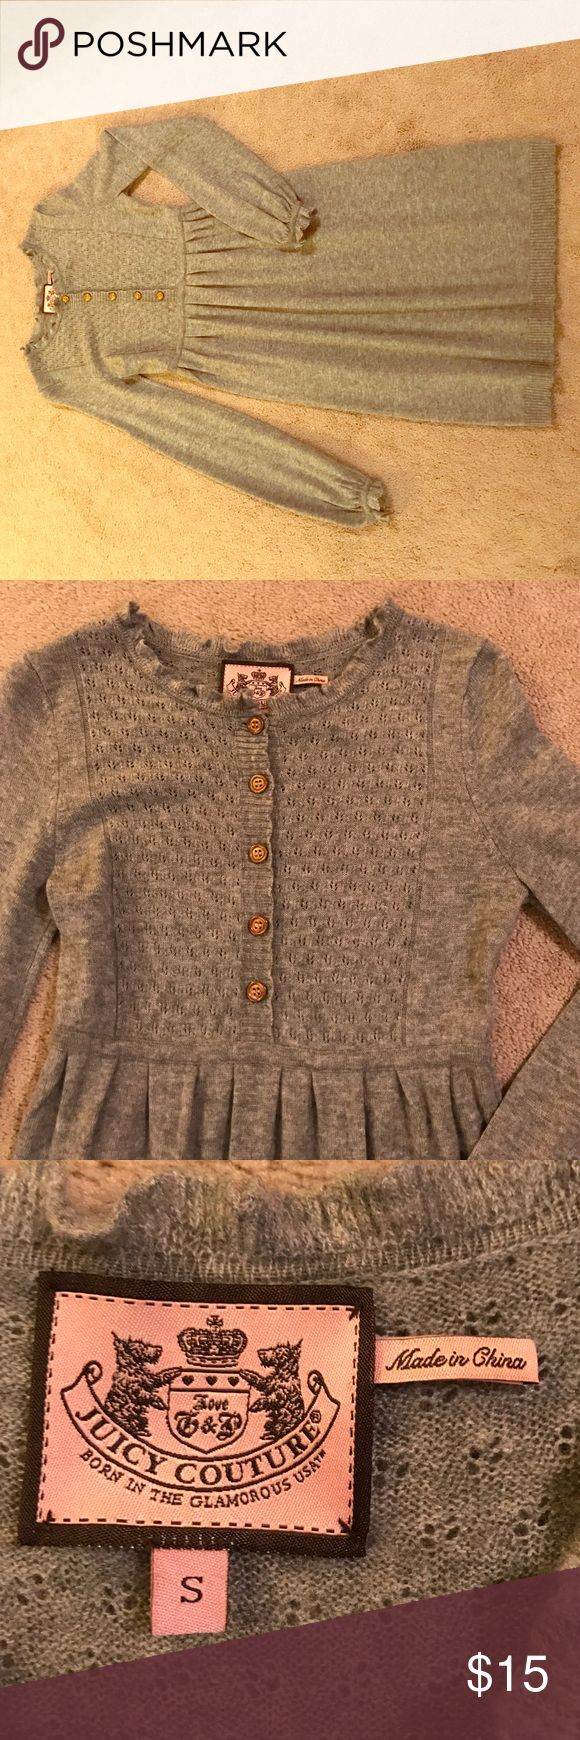 Juicy Couture sweater dress Gray sweater dress made by Juicy Couture.  Cute & comfy, I just don't wear it enough!  Size small. Juicy Couture Dresses